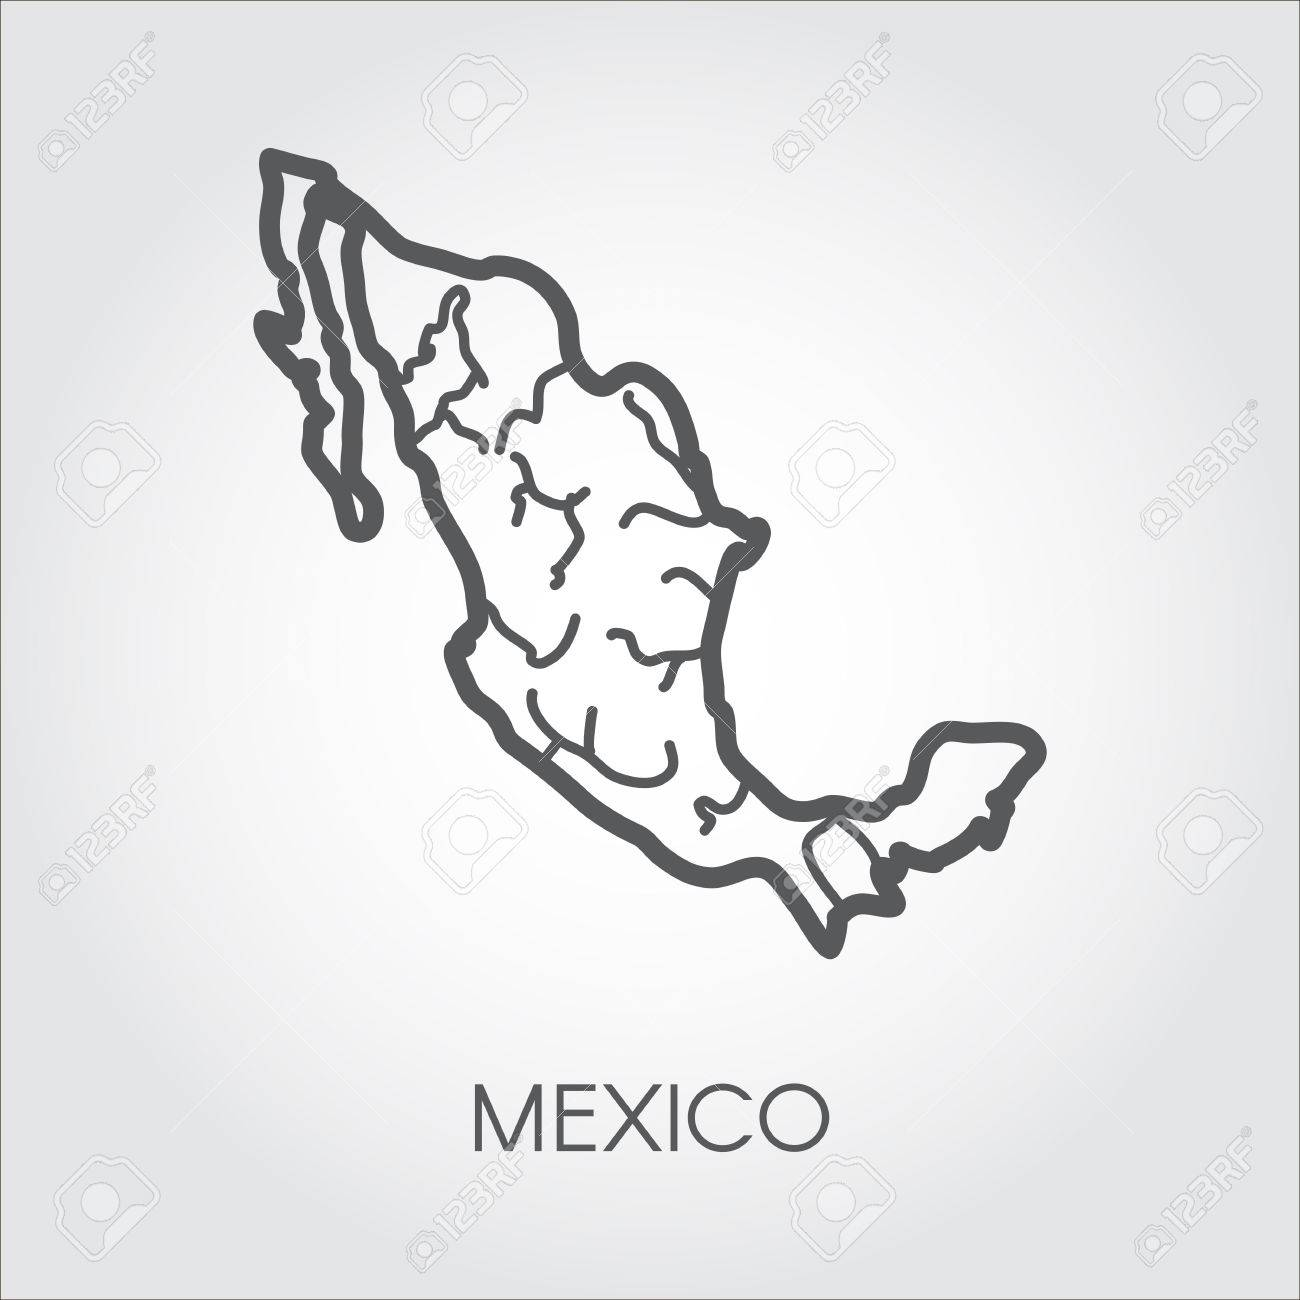 1300x1300 Mexico Linear Map Icon. Simplicity Shape Of Country For Atlas